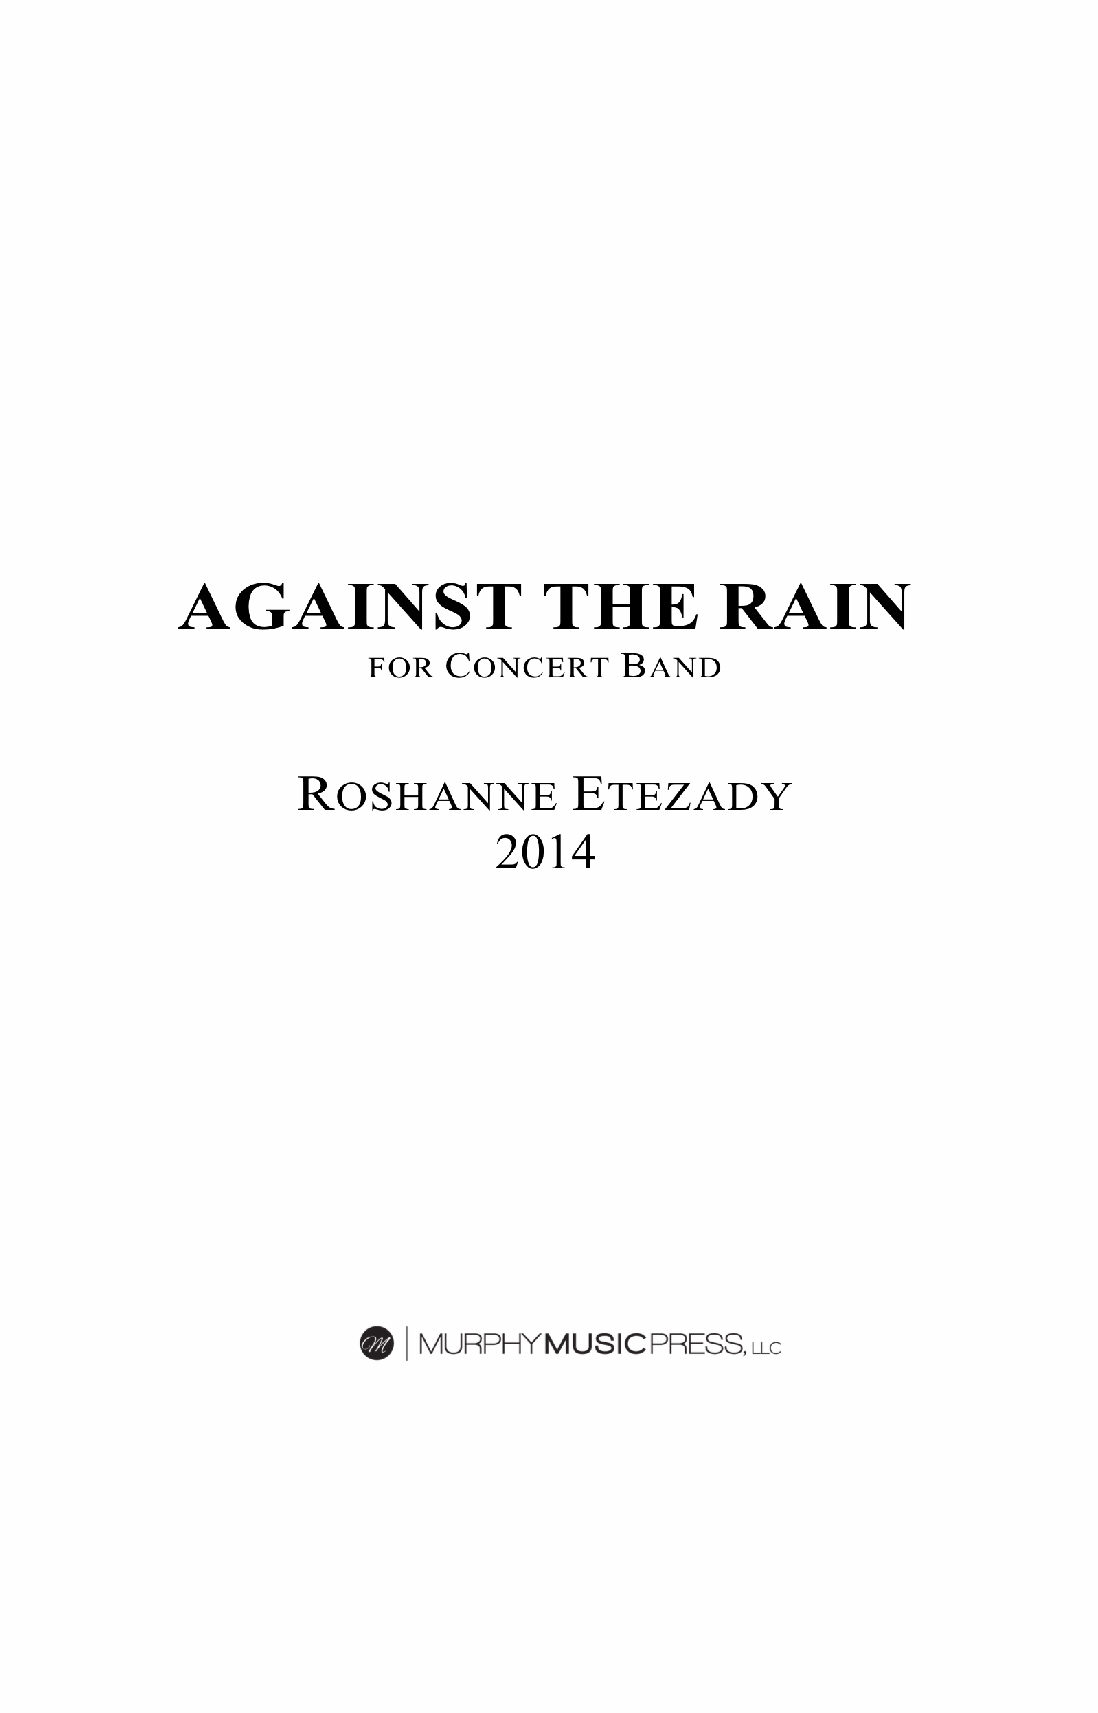 Against The Rain (Score Only) by Roshanne Etezady